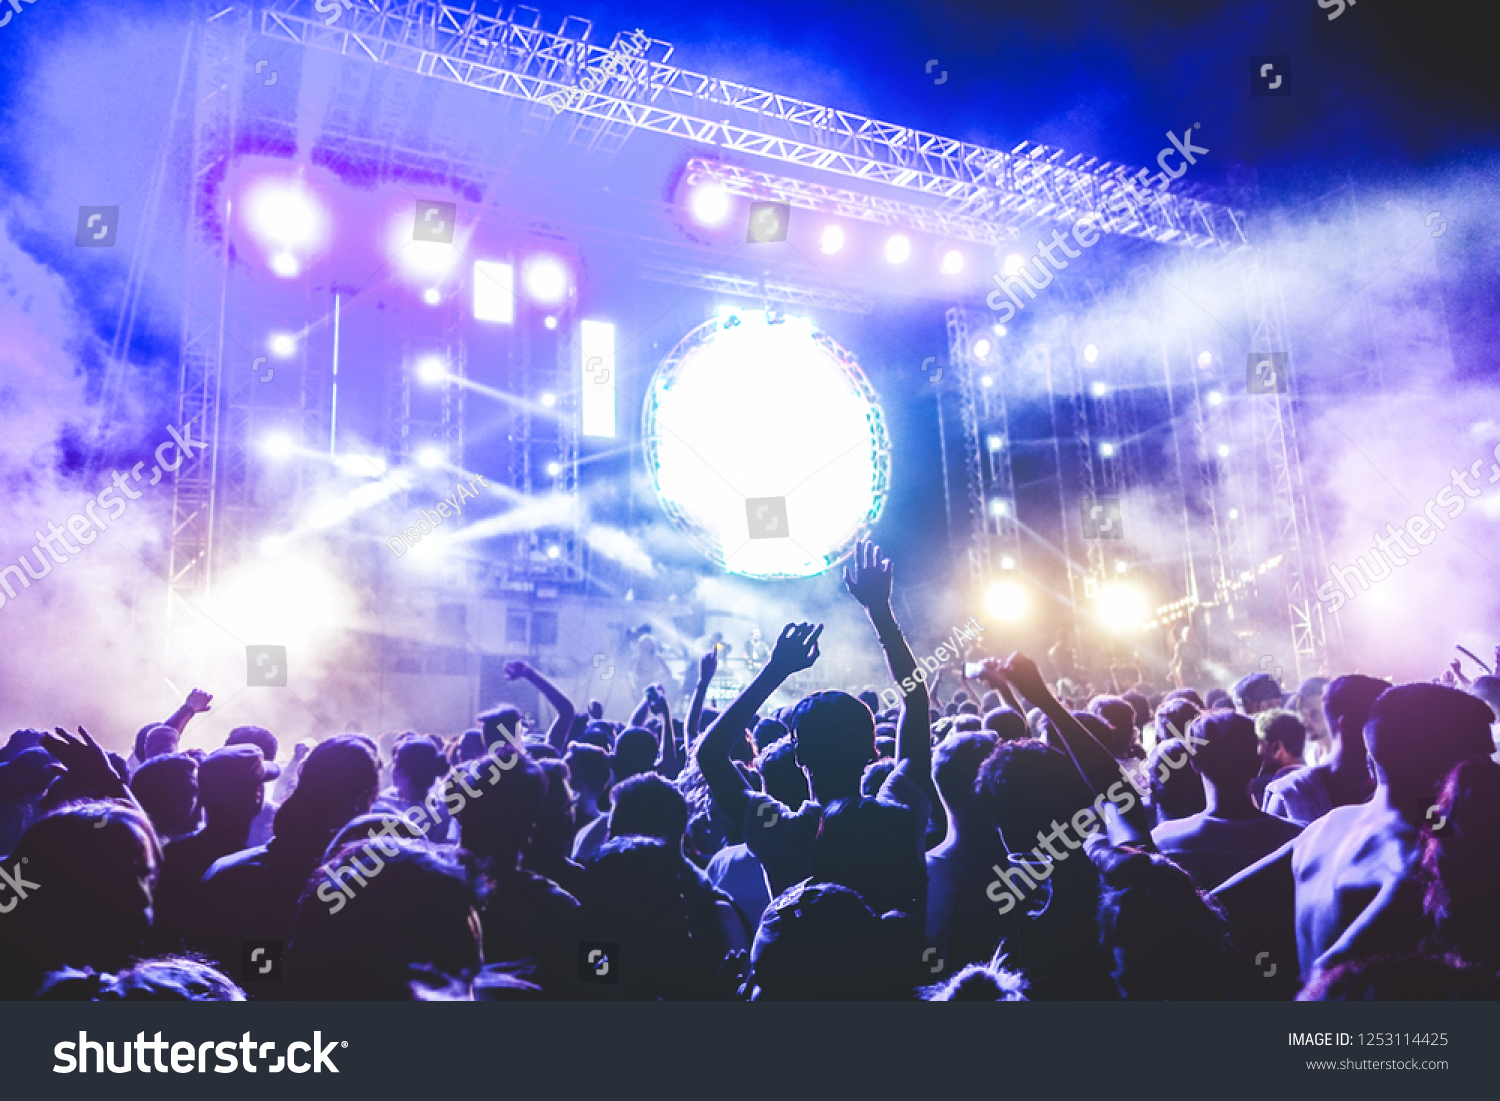 Happy people dancing and having fun in new year's eve festival party outdoor - Crowd of millennial guys celebrating concert event - Soft focus on center man head with hands up - Fun and youth concept #1253114425